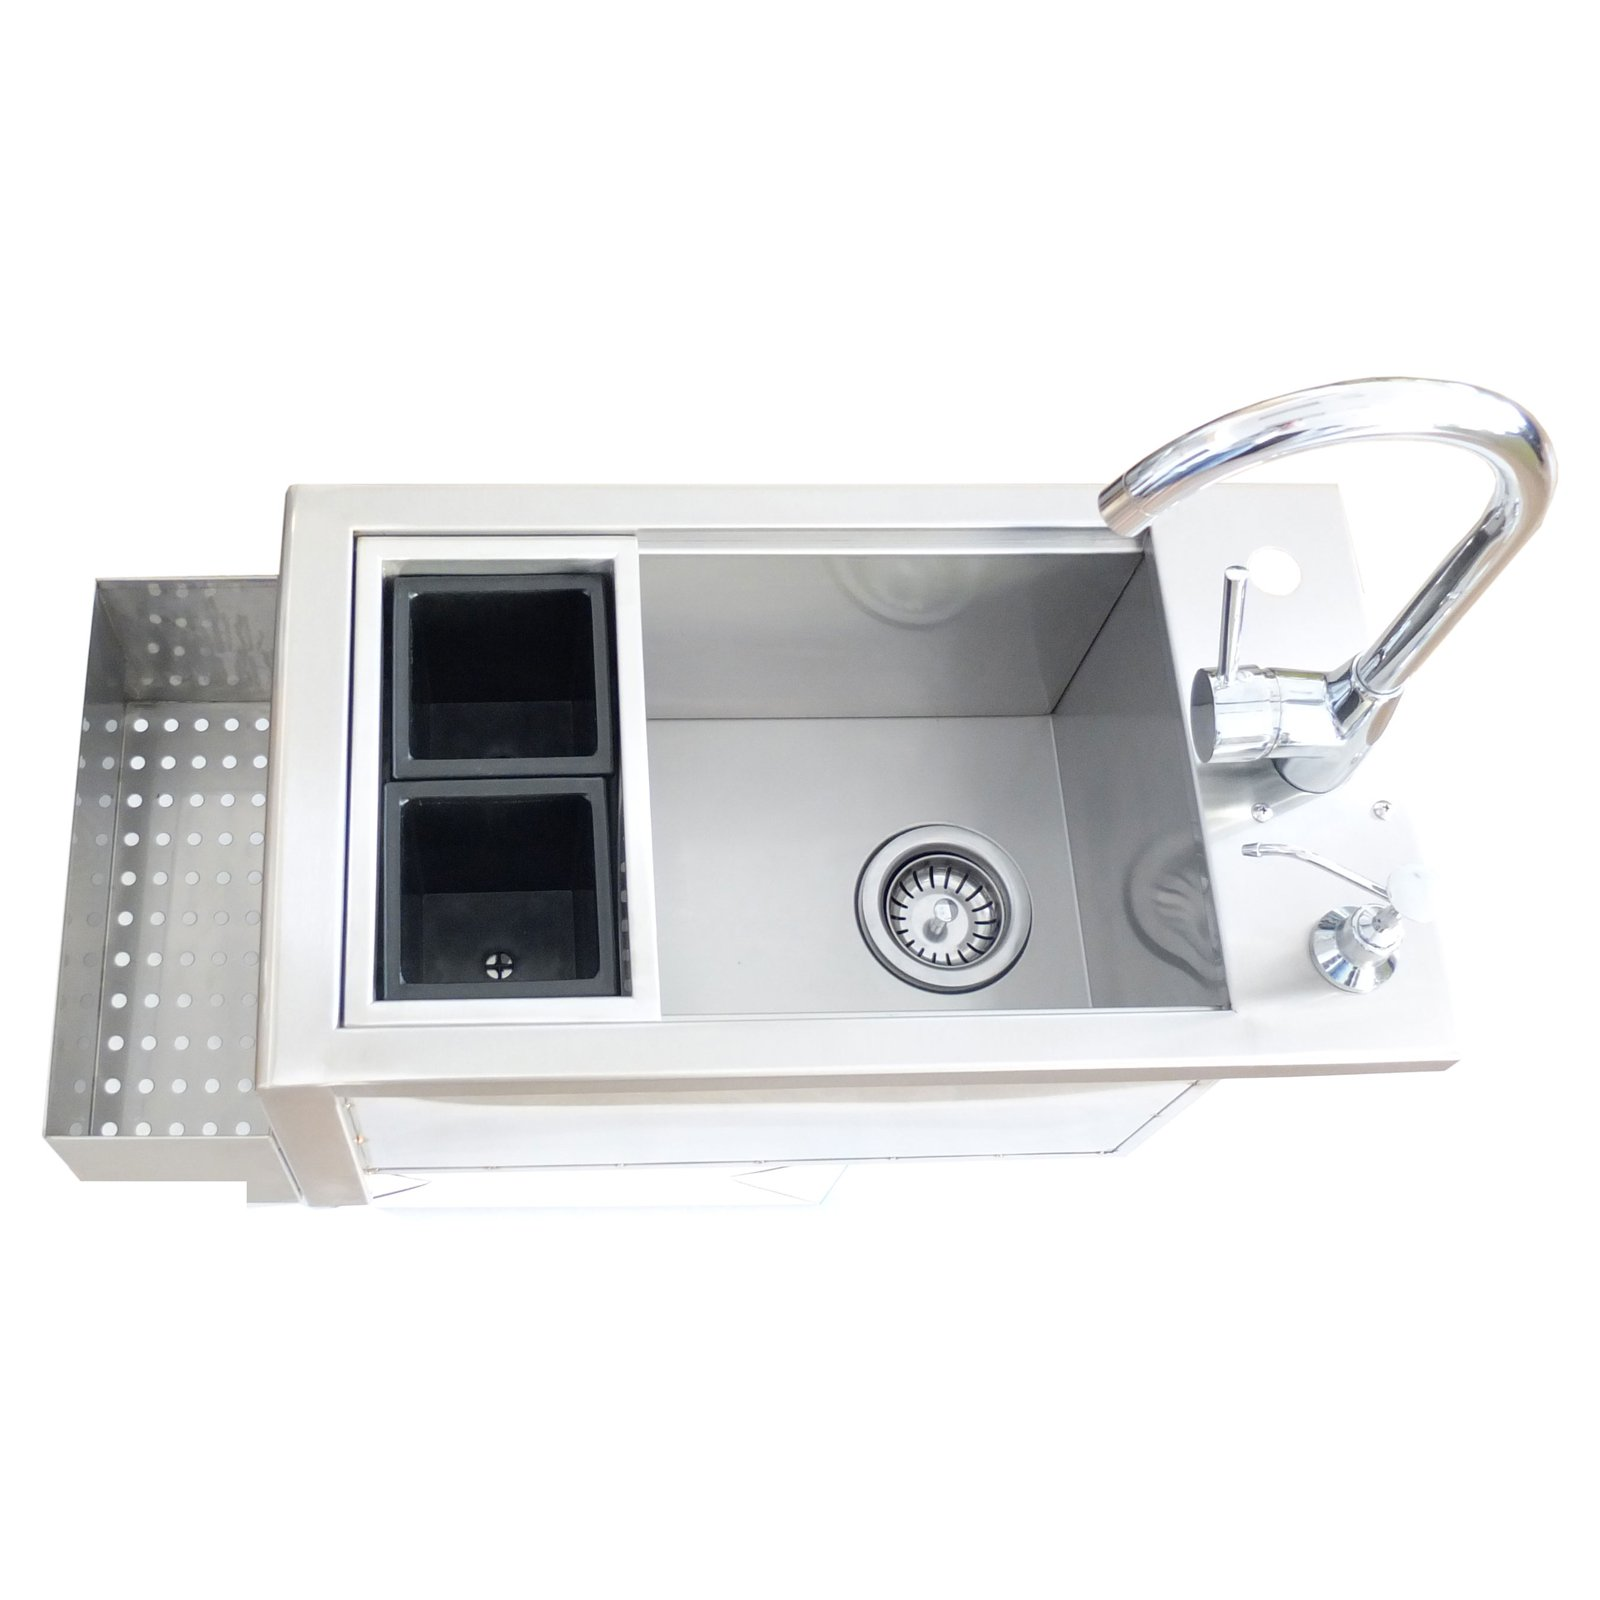 Sunstone Grills 14 in. Cocktail Pro Built In Sink